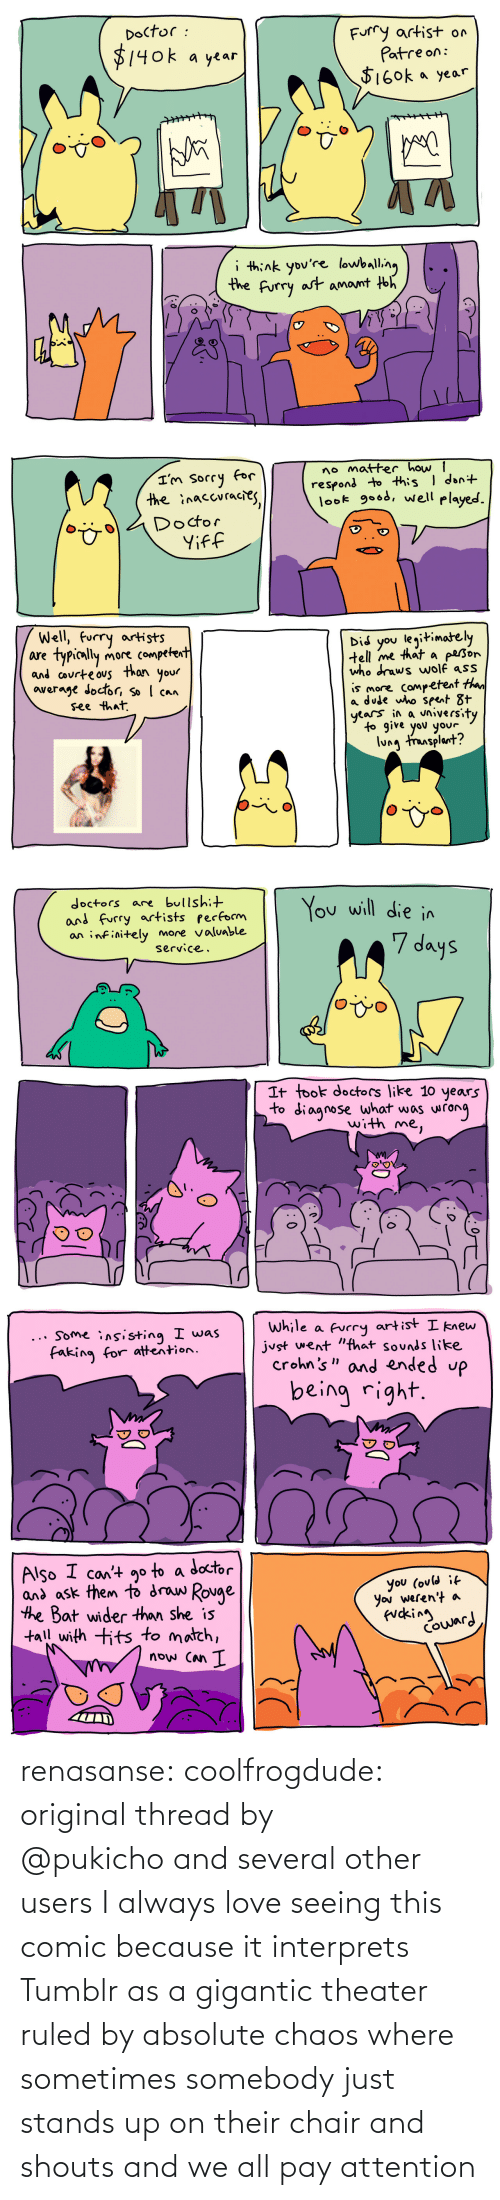 Doctor: renasanse: coolfrogdude: original thread by @pukicho and several other users I always love seeing this comic because it interprets Tumblr as a gigantic theater ruled by absolute chaos where sometimes somebody just stands up on their chair and shouts and we all pay attention